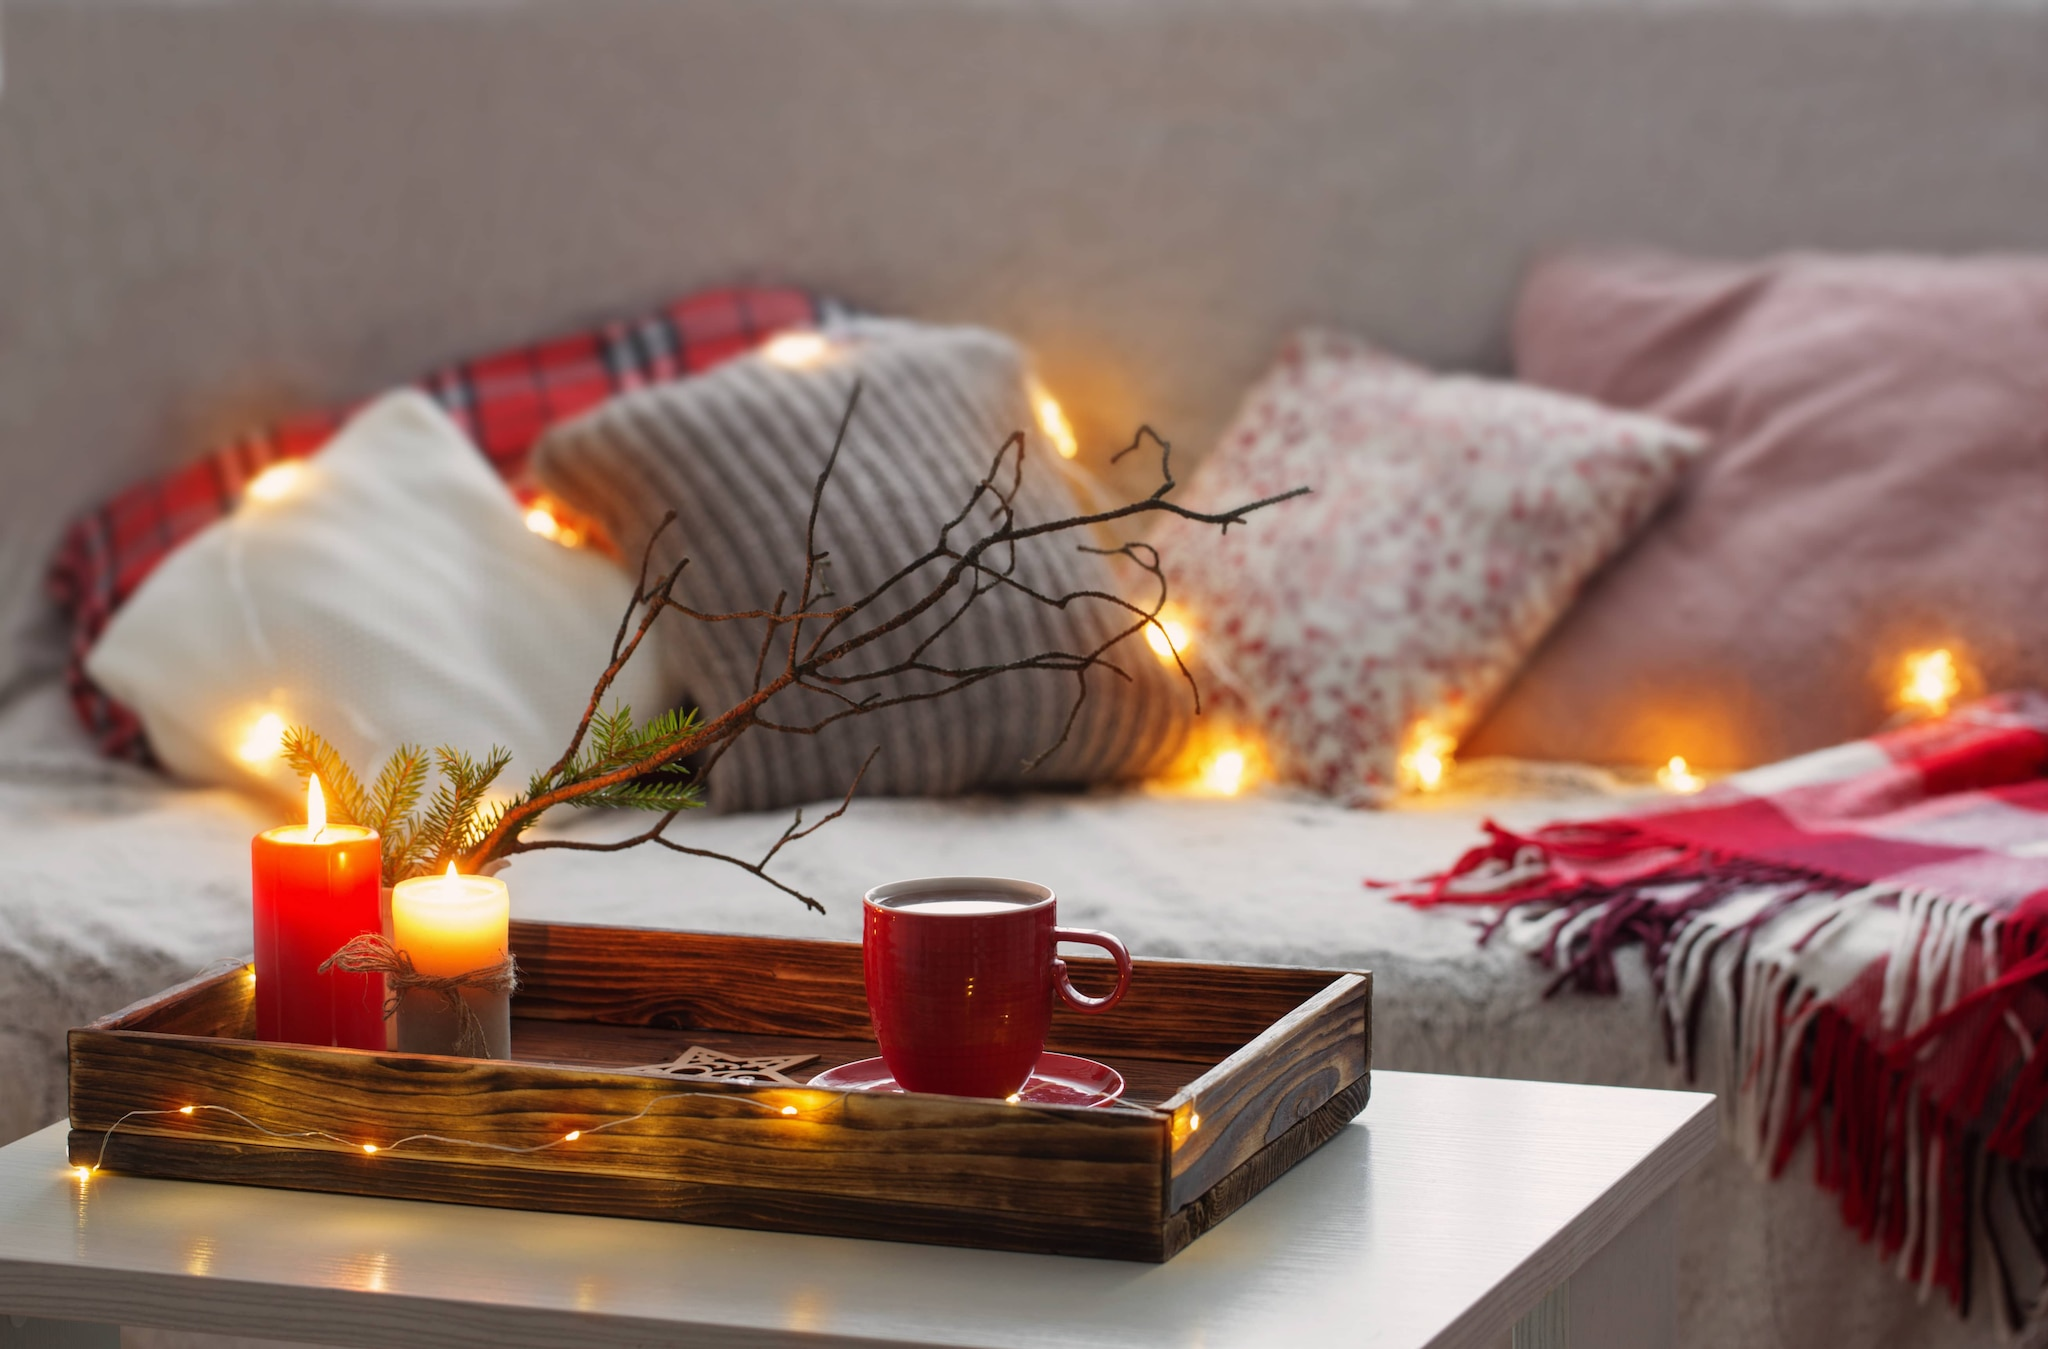 cozy couch with red cup in a tray on the coffee table